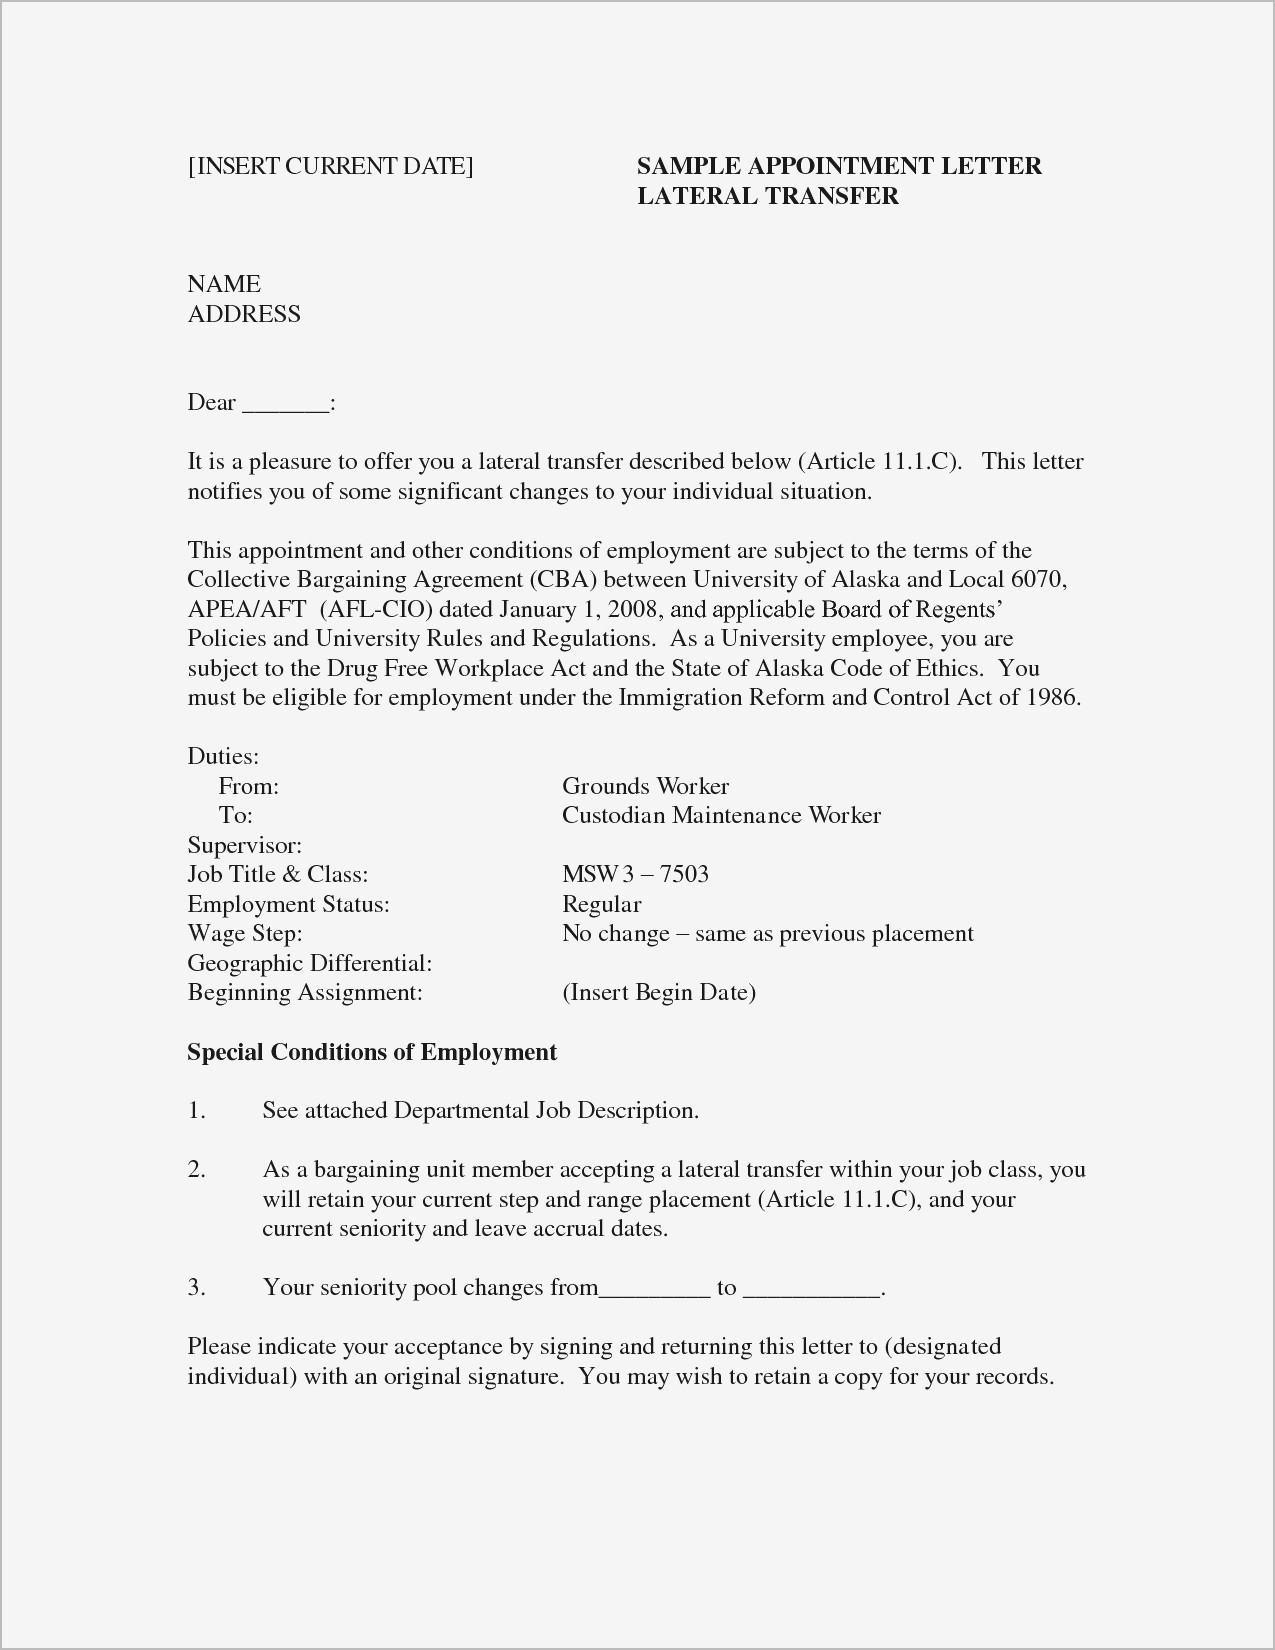 Home Offer Letter Template - Job Fer Letter Template Us Copy Od Consultant Cover Letter Fungram